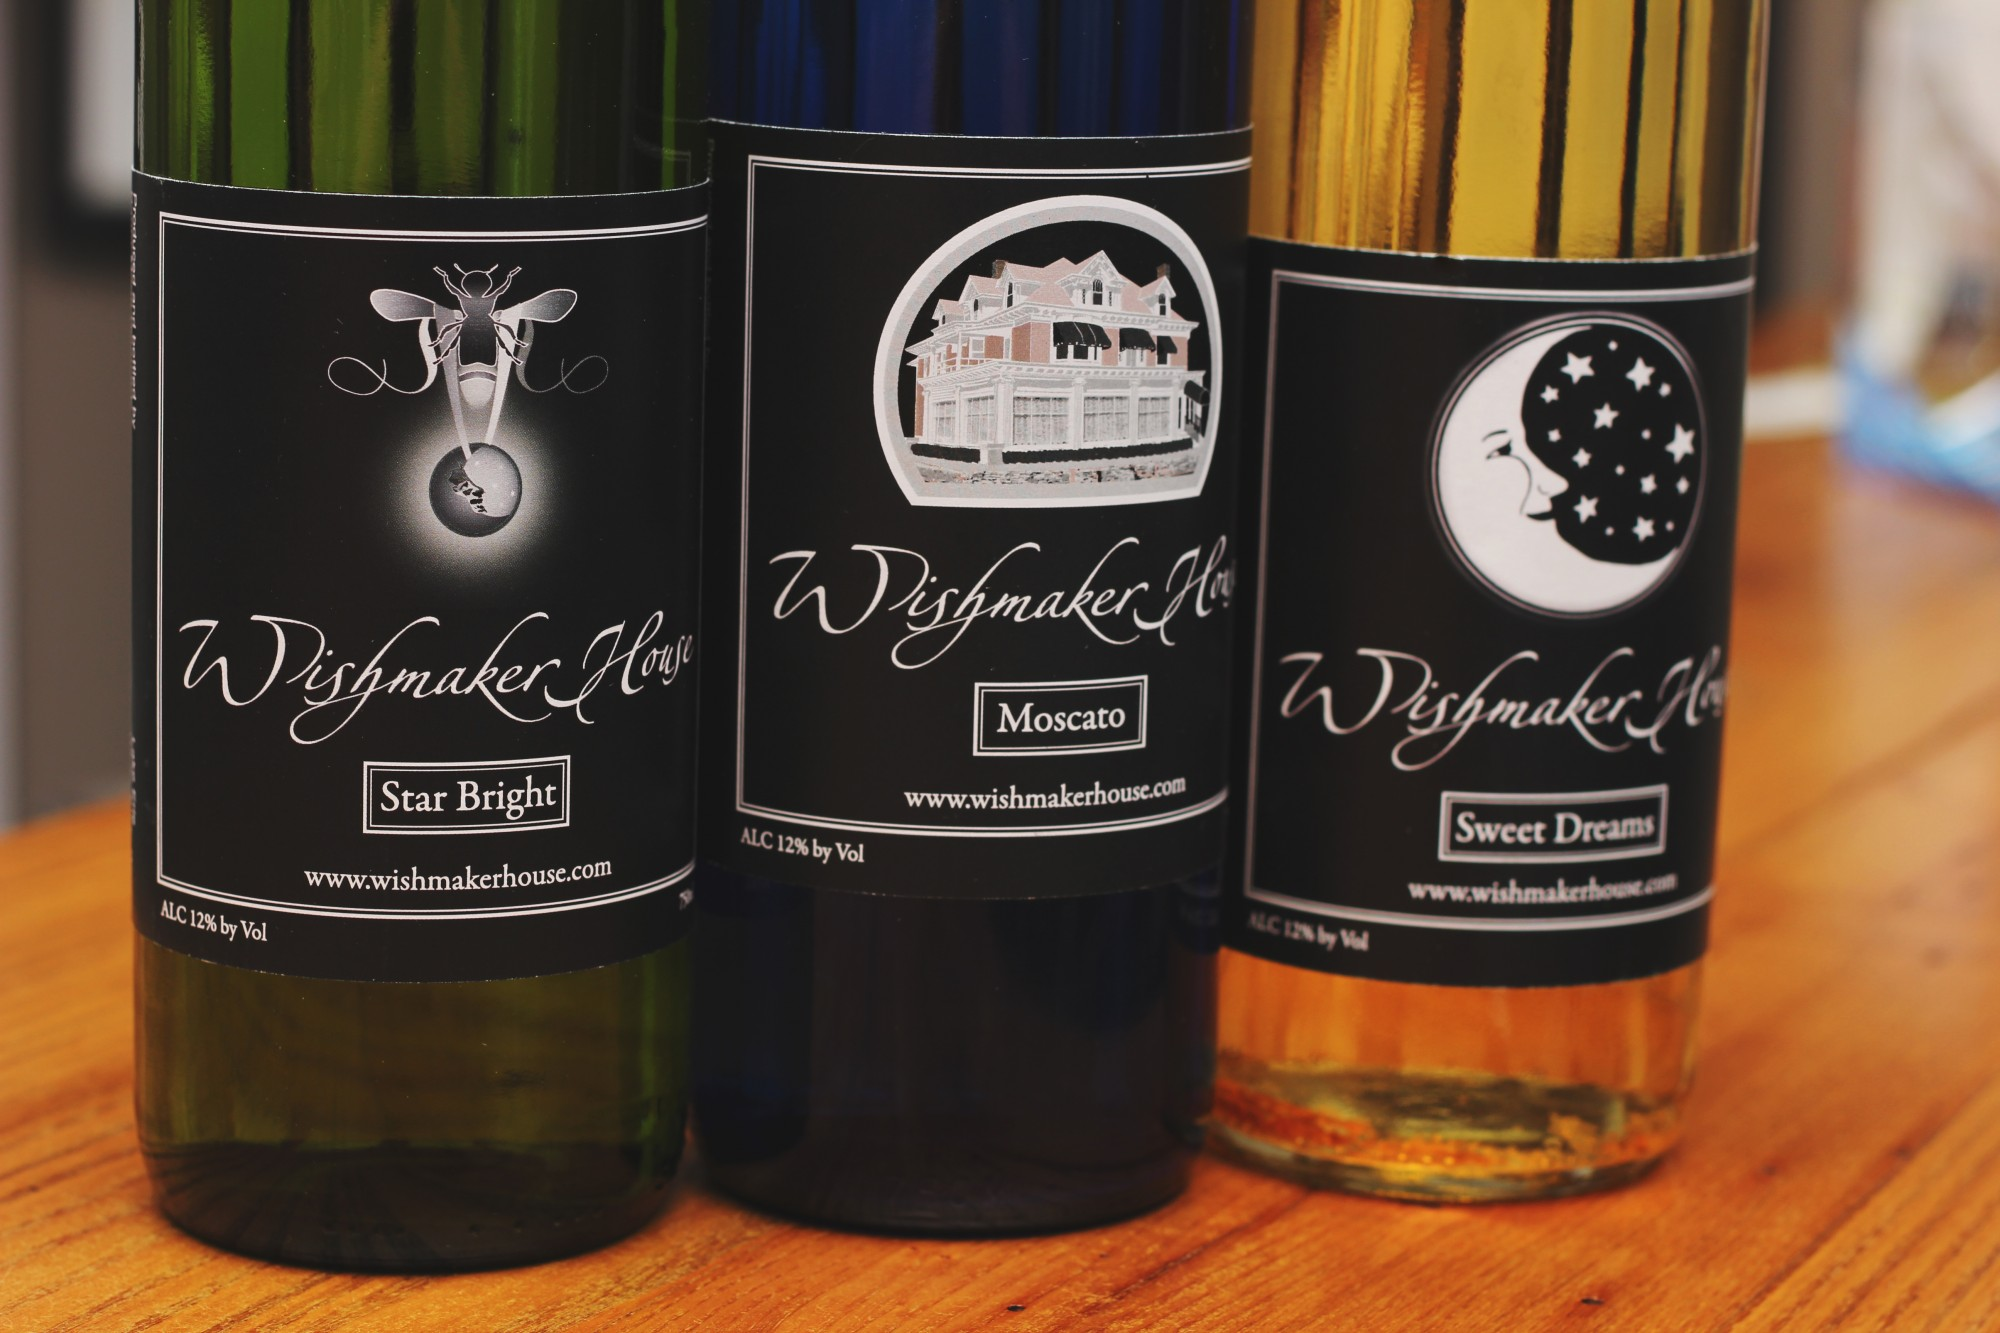 Wishmaker House Winery and Wine Bar Bellville, Ohio